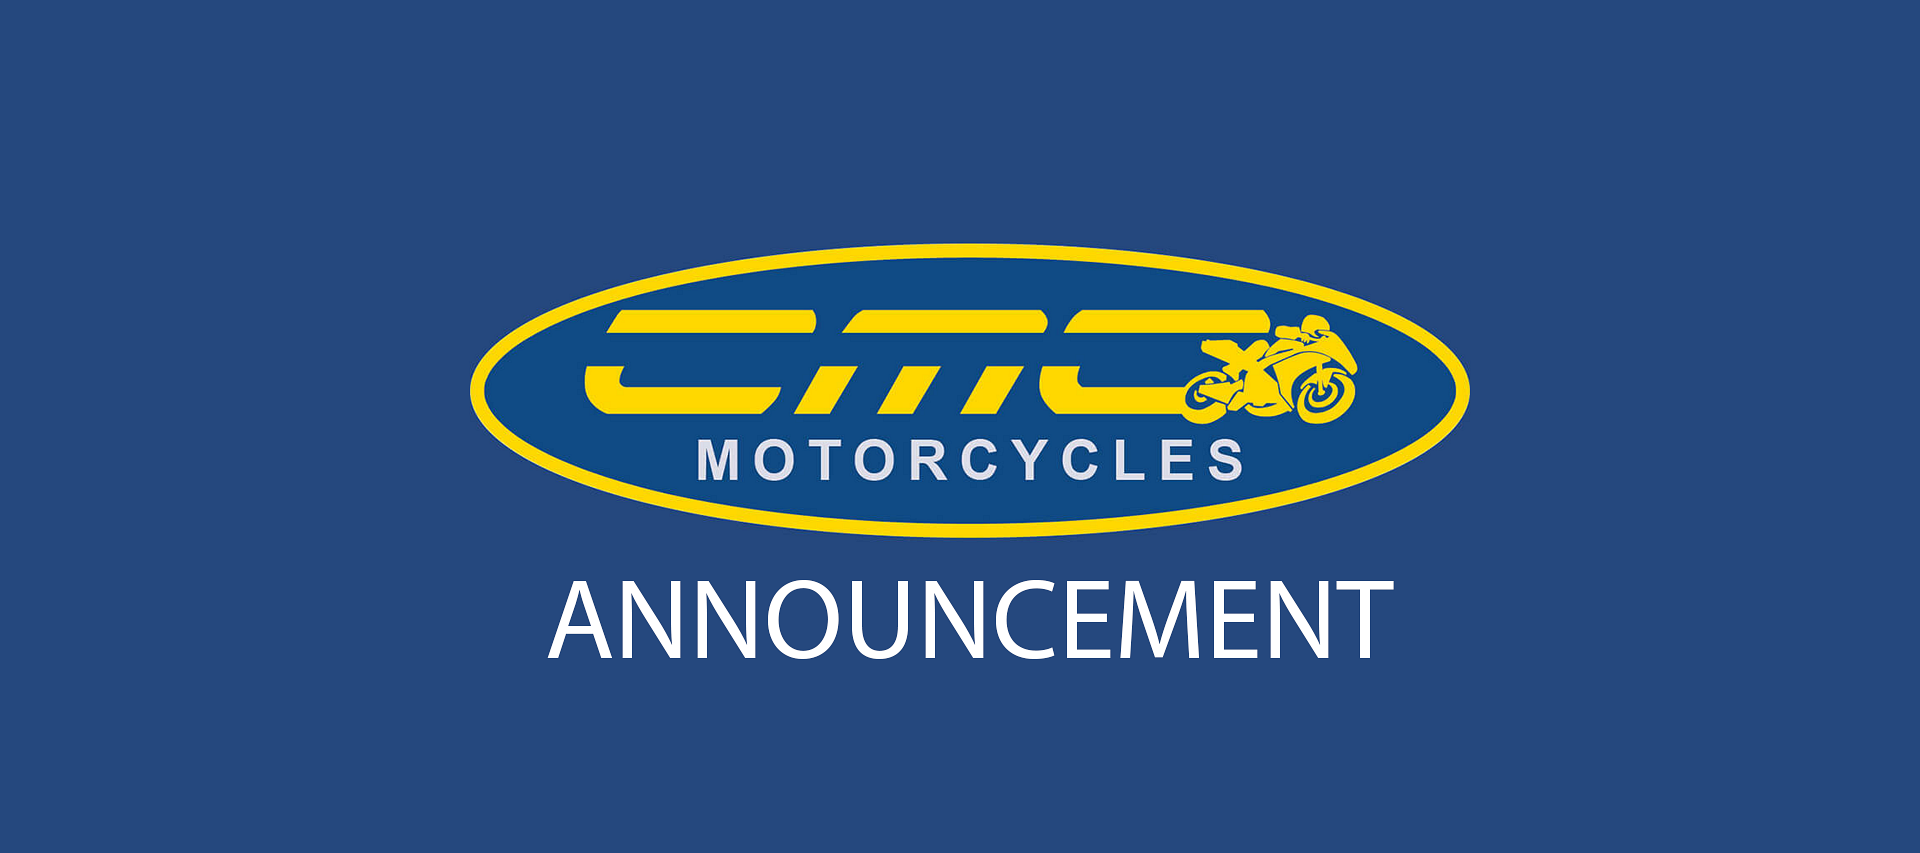 We will be announcing during the next week our plans for CMC and our dealerships at Cannock, Chesterfield, Coleshill, Manchester and South Wales.